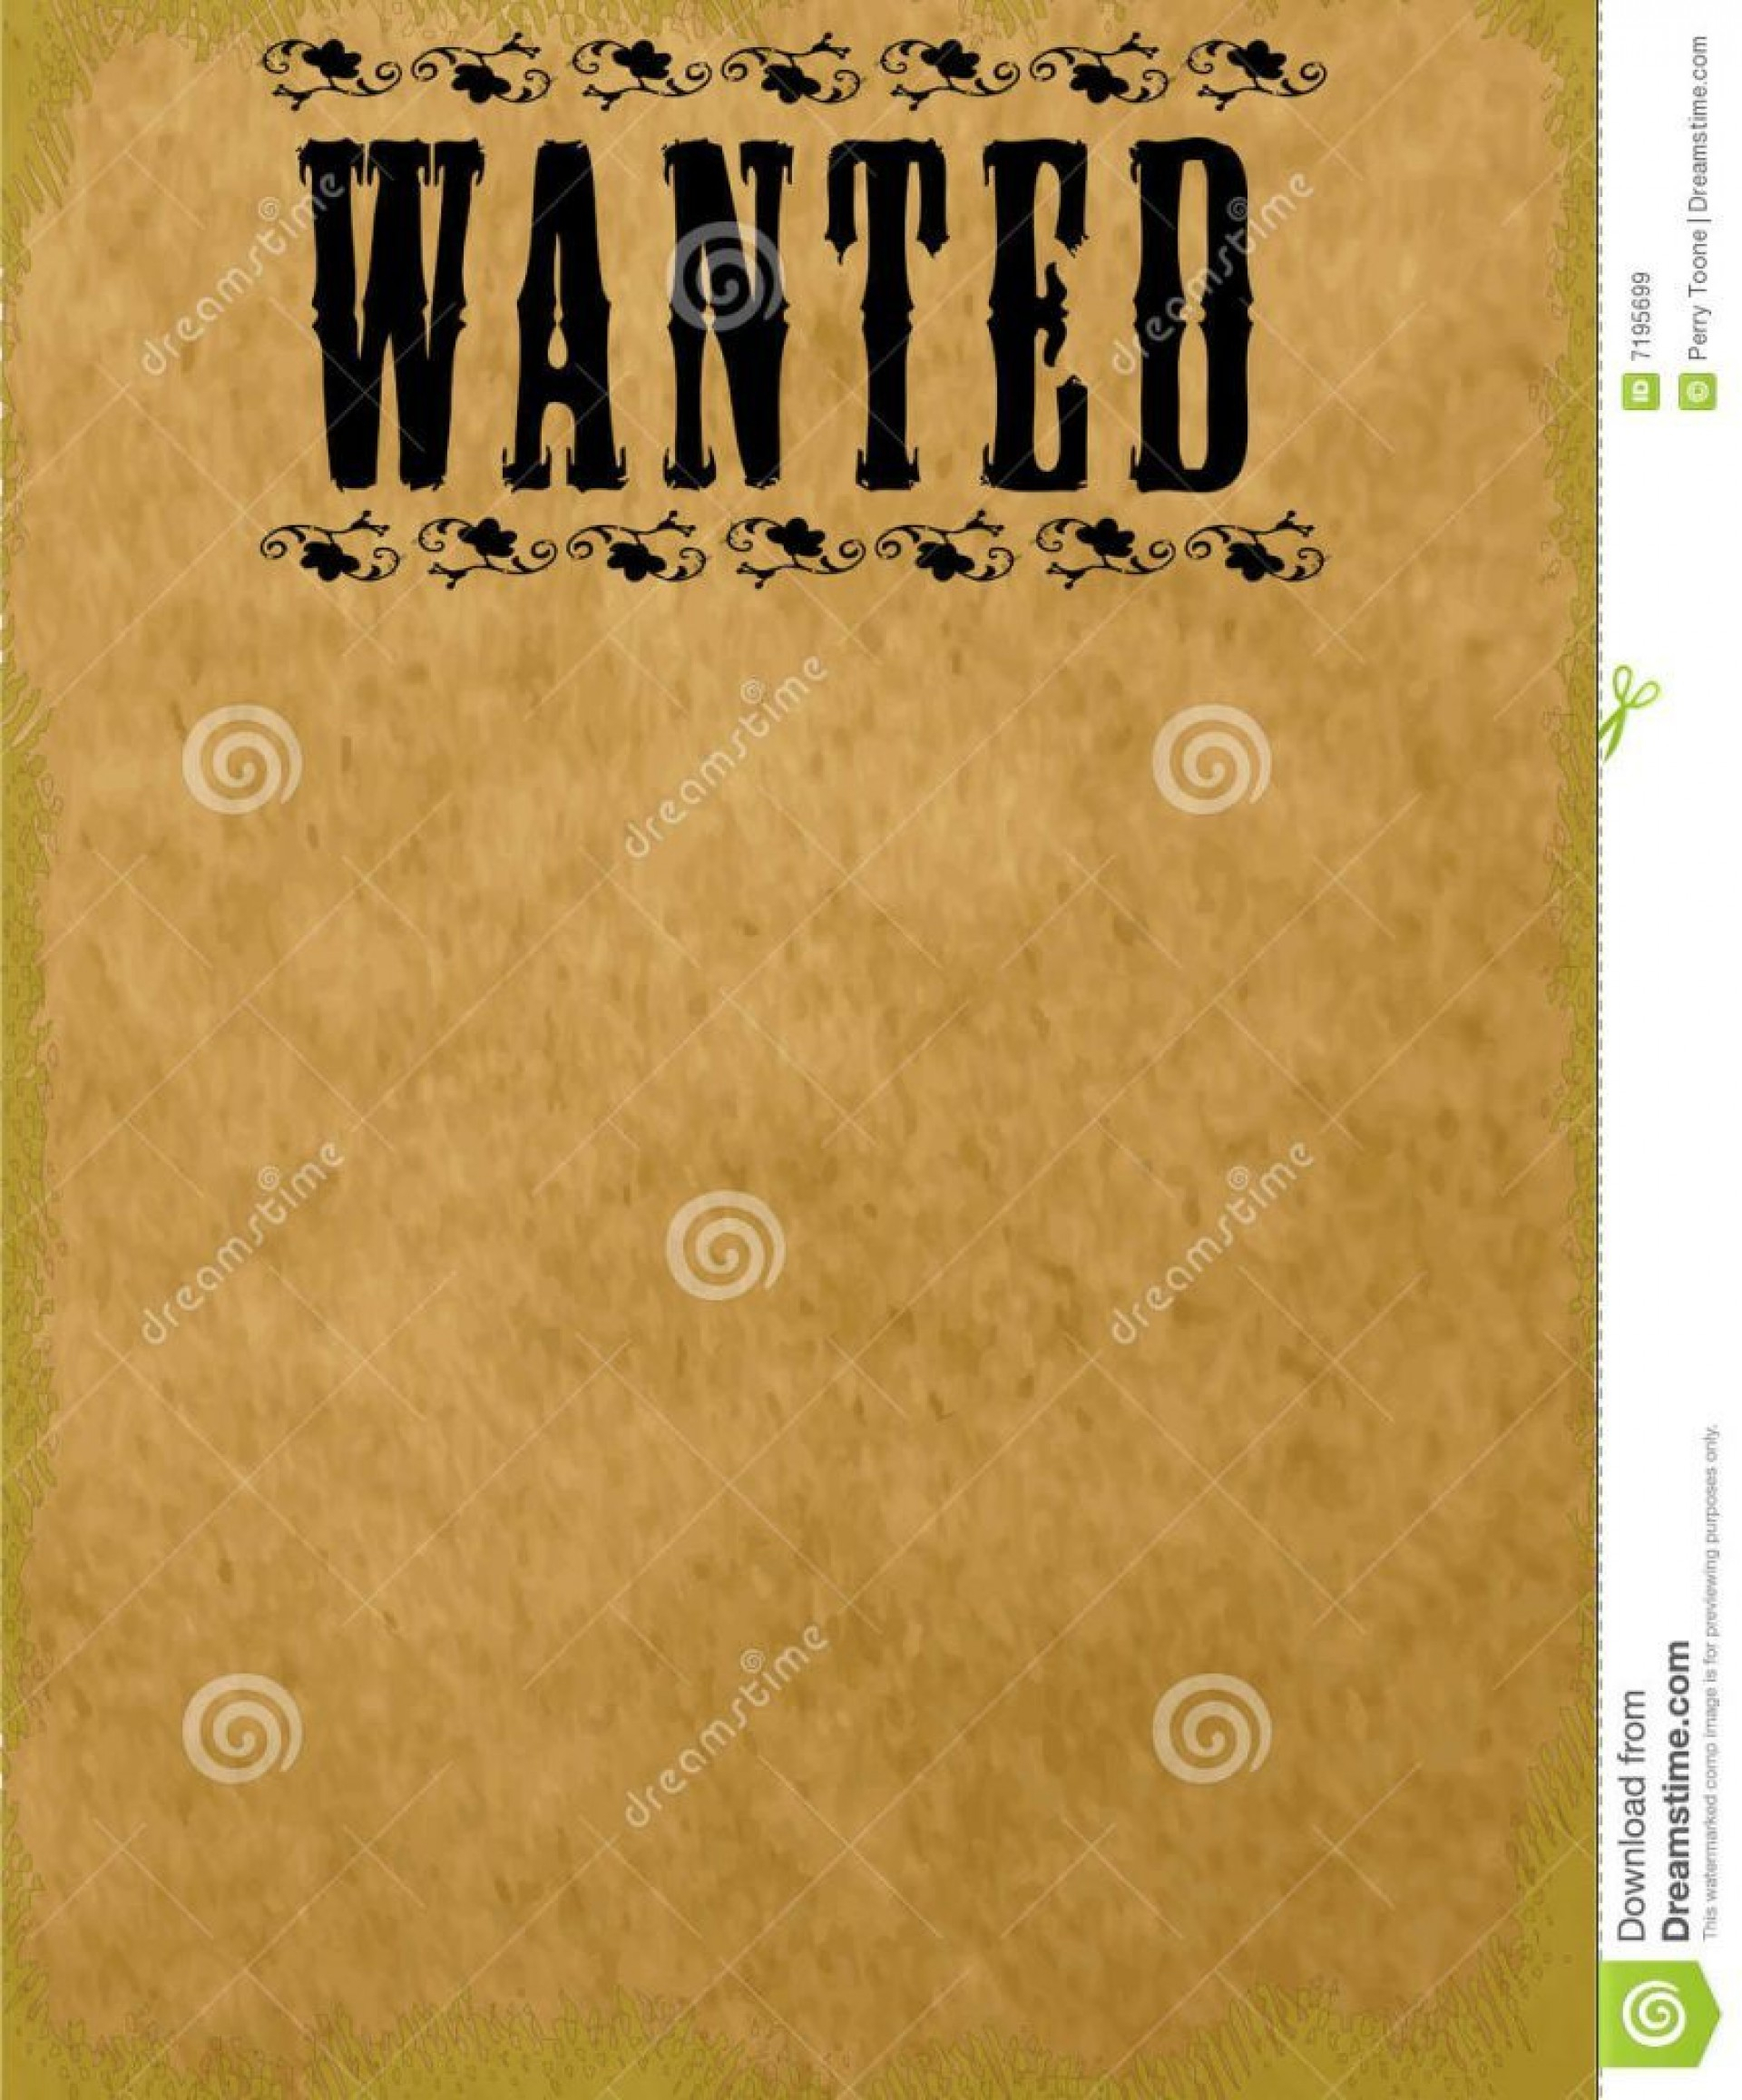 003 Template Ideas Wanted Poster Free Stupendous Printable with Wanted Poster Template Free Printable